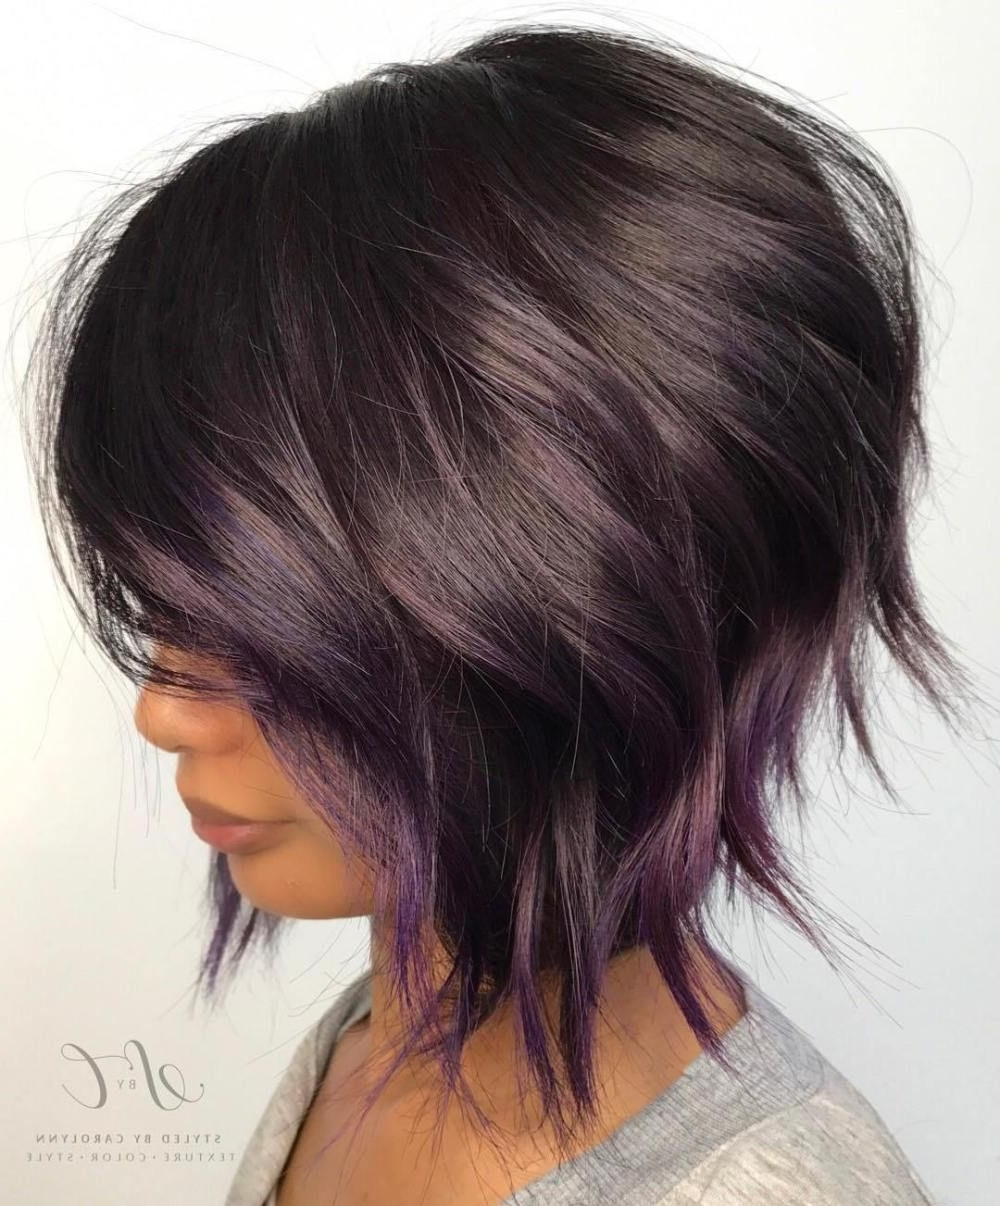 20 Purple Balayage Ideas From Subtle To Vibrant | Pinterest | Purple Within Most Popular Balayage Pixie Haircuts With Tiered Layers (View 15 of 15)